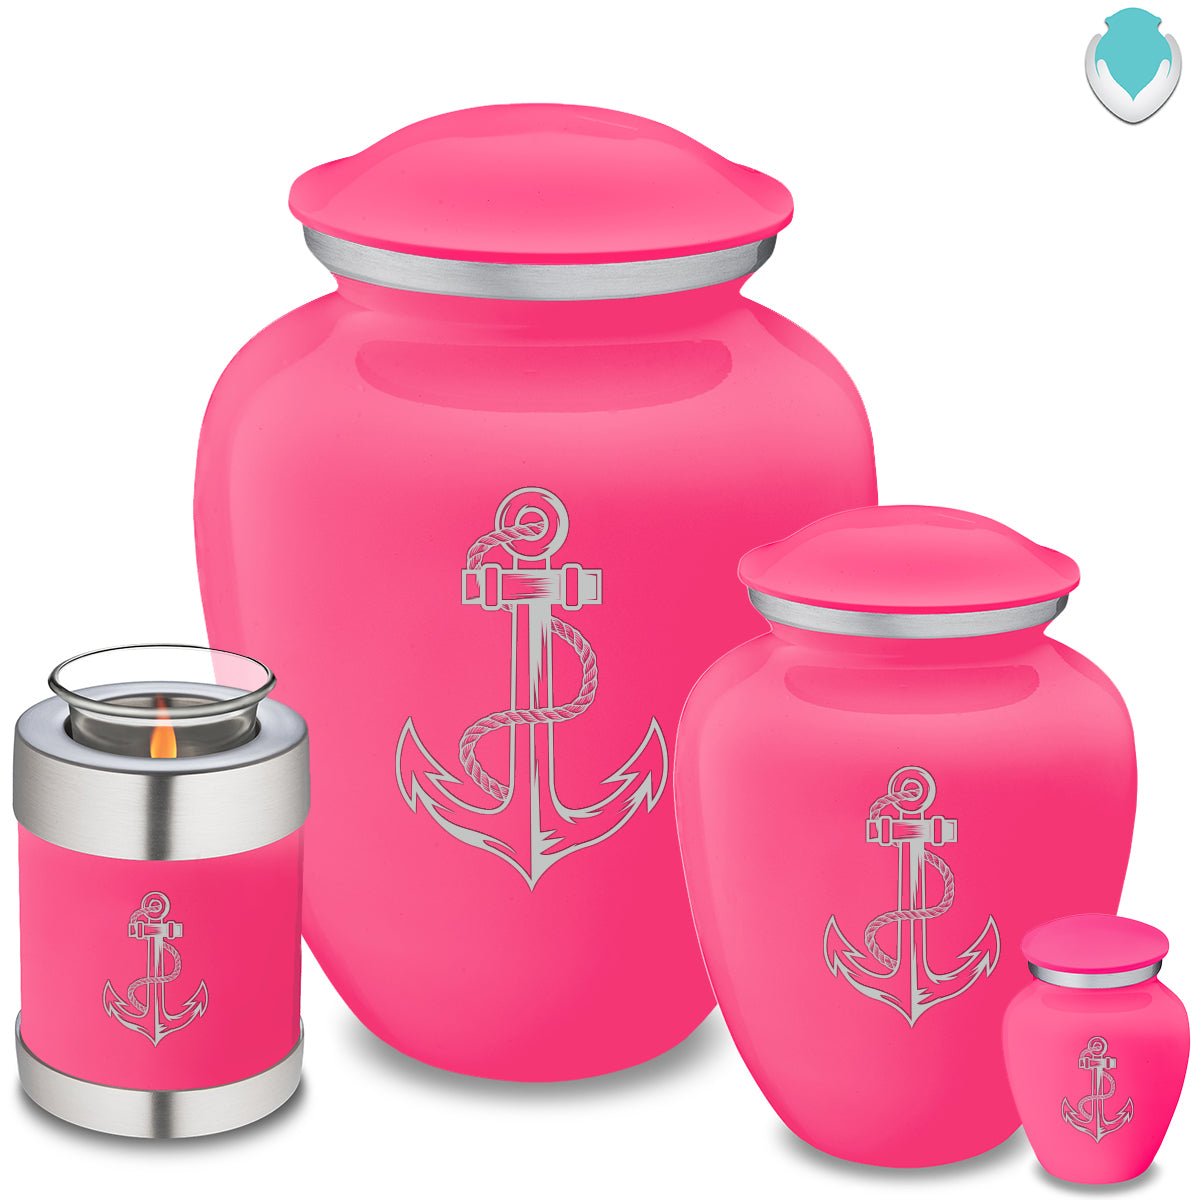 Adult Embrace Bright Pink Anchor Cremation Urn